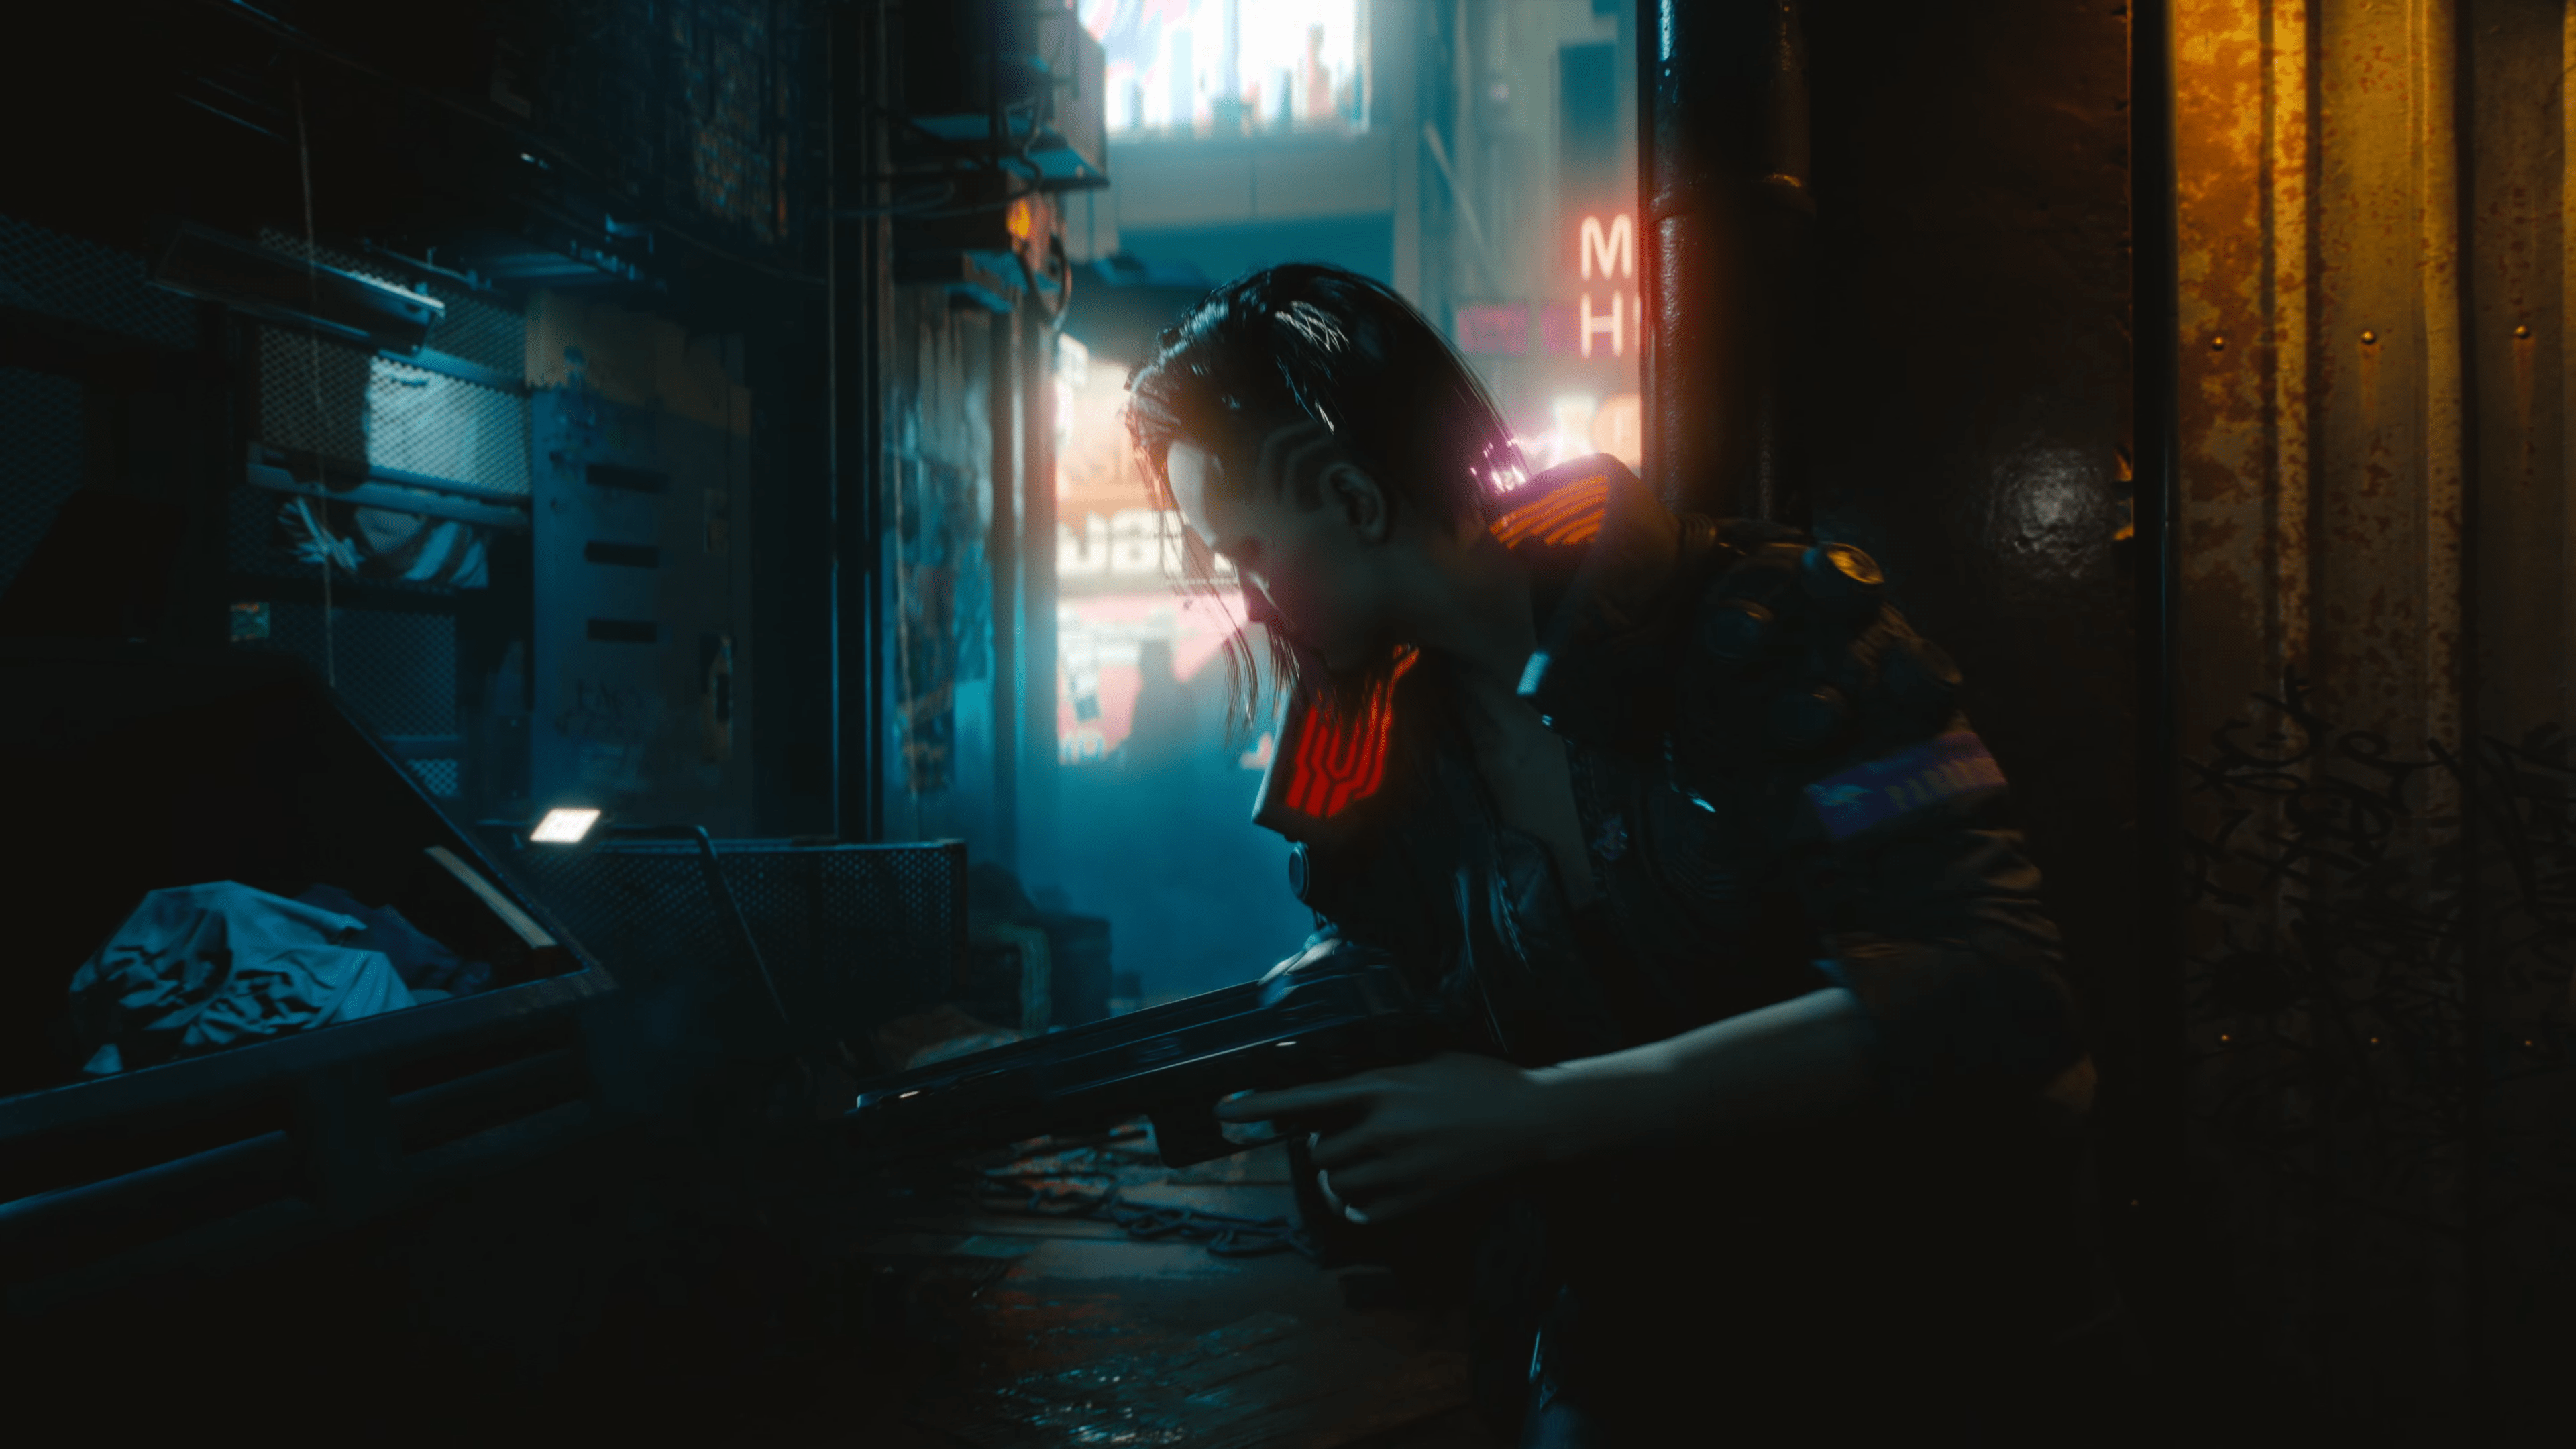 2k Wallpapers For Iphone X Cyberpunk 2077 4k Ultra Hd Wallpaper And Background Image